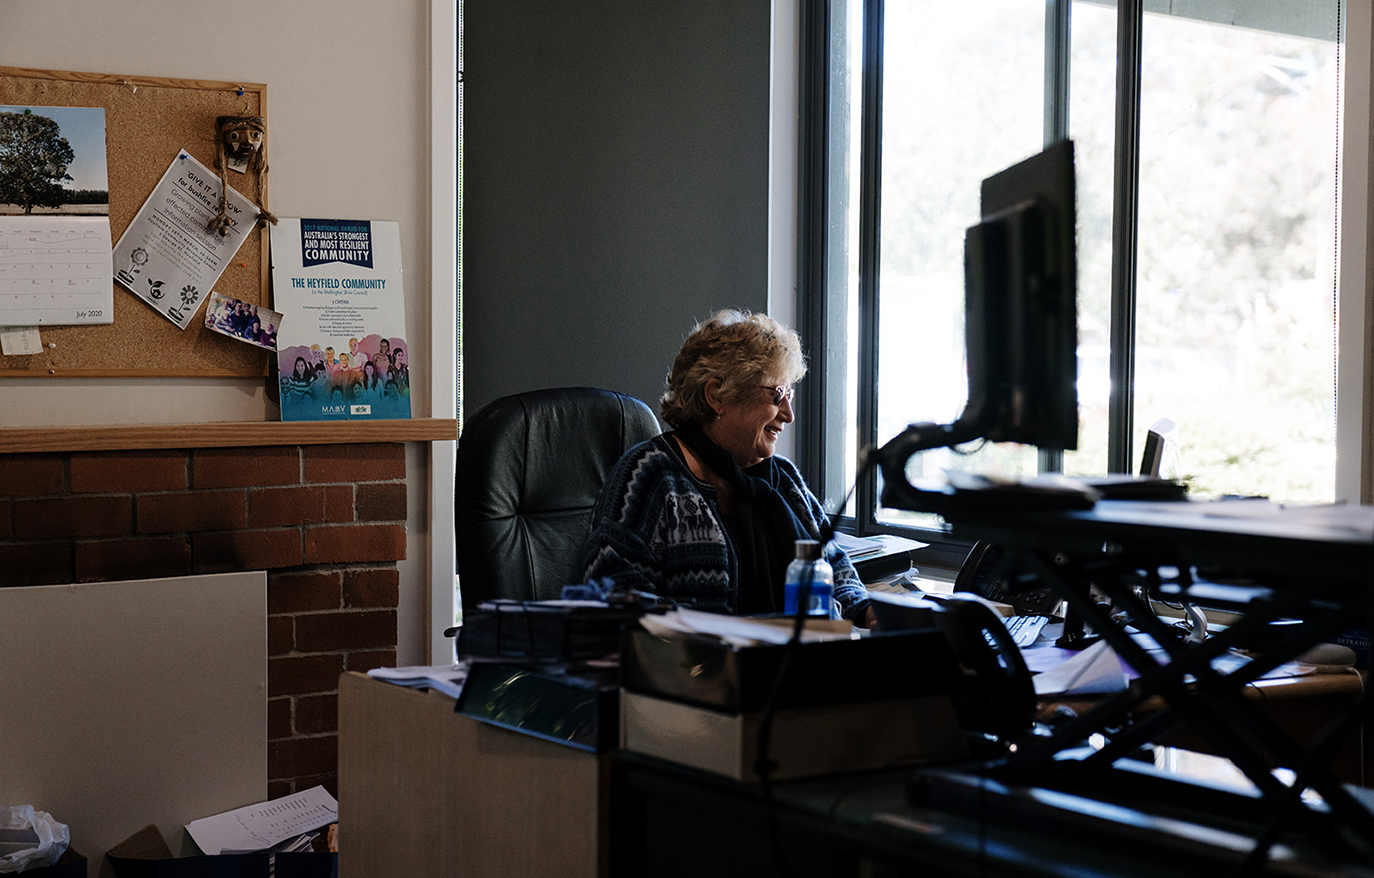 Local powerhouse: Julie Bryer of the Heyfield Community Resource Centre.